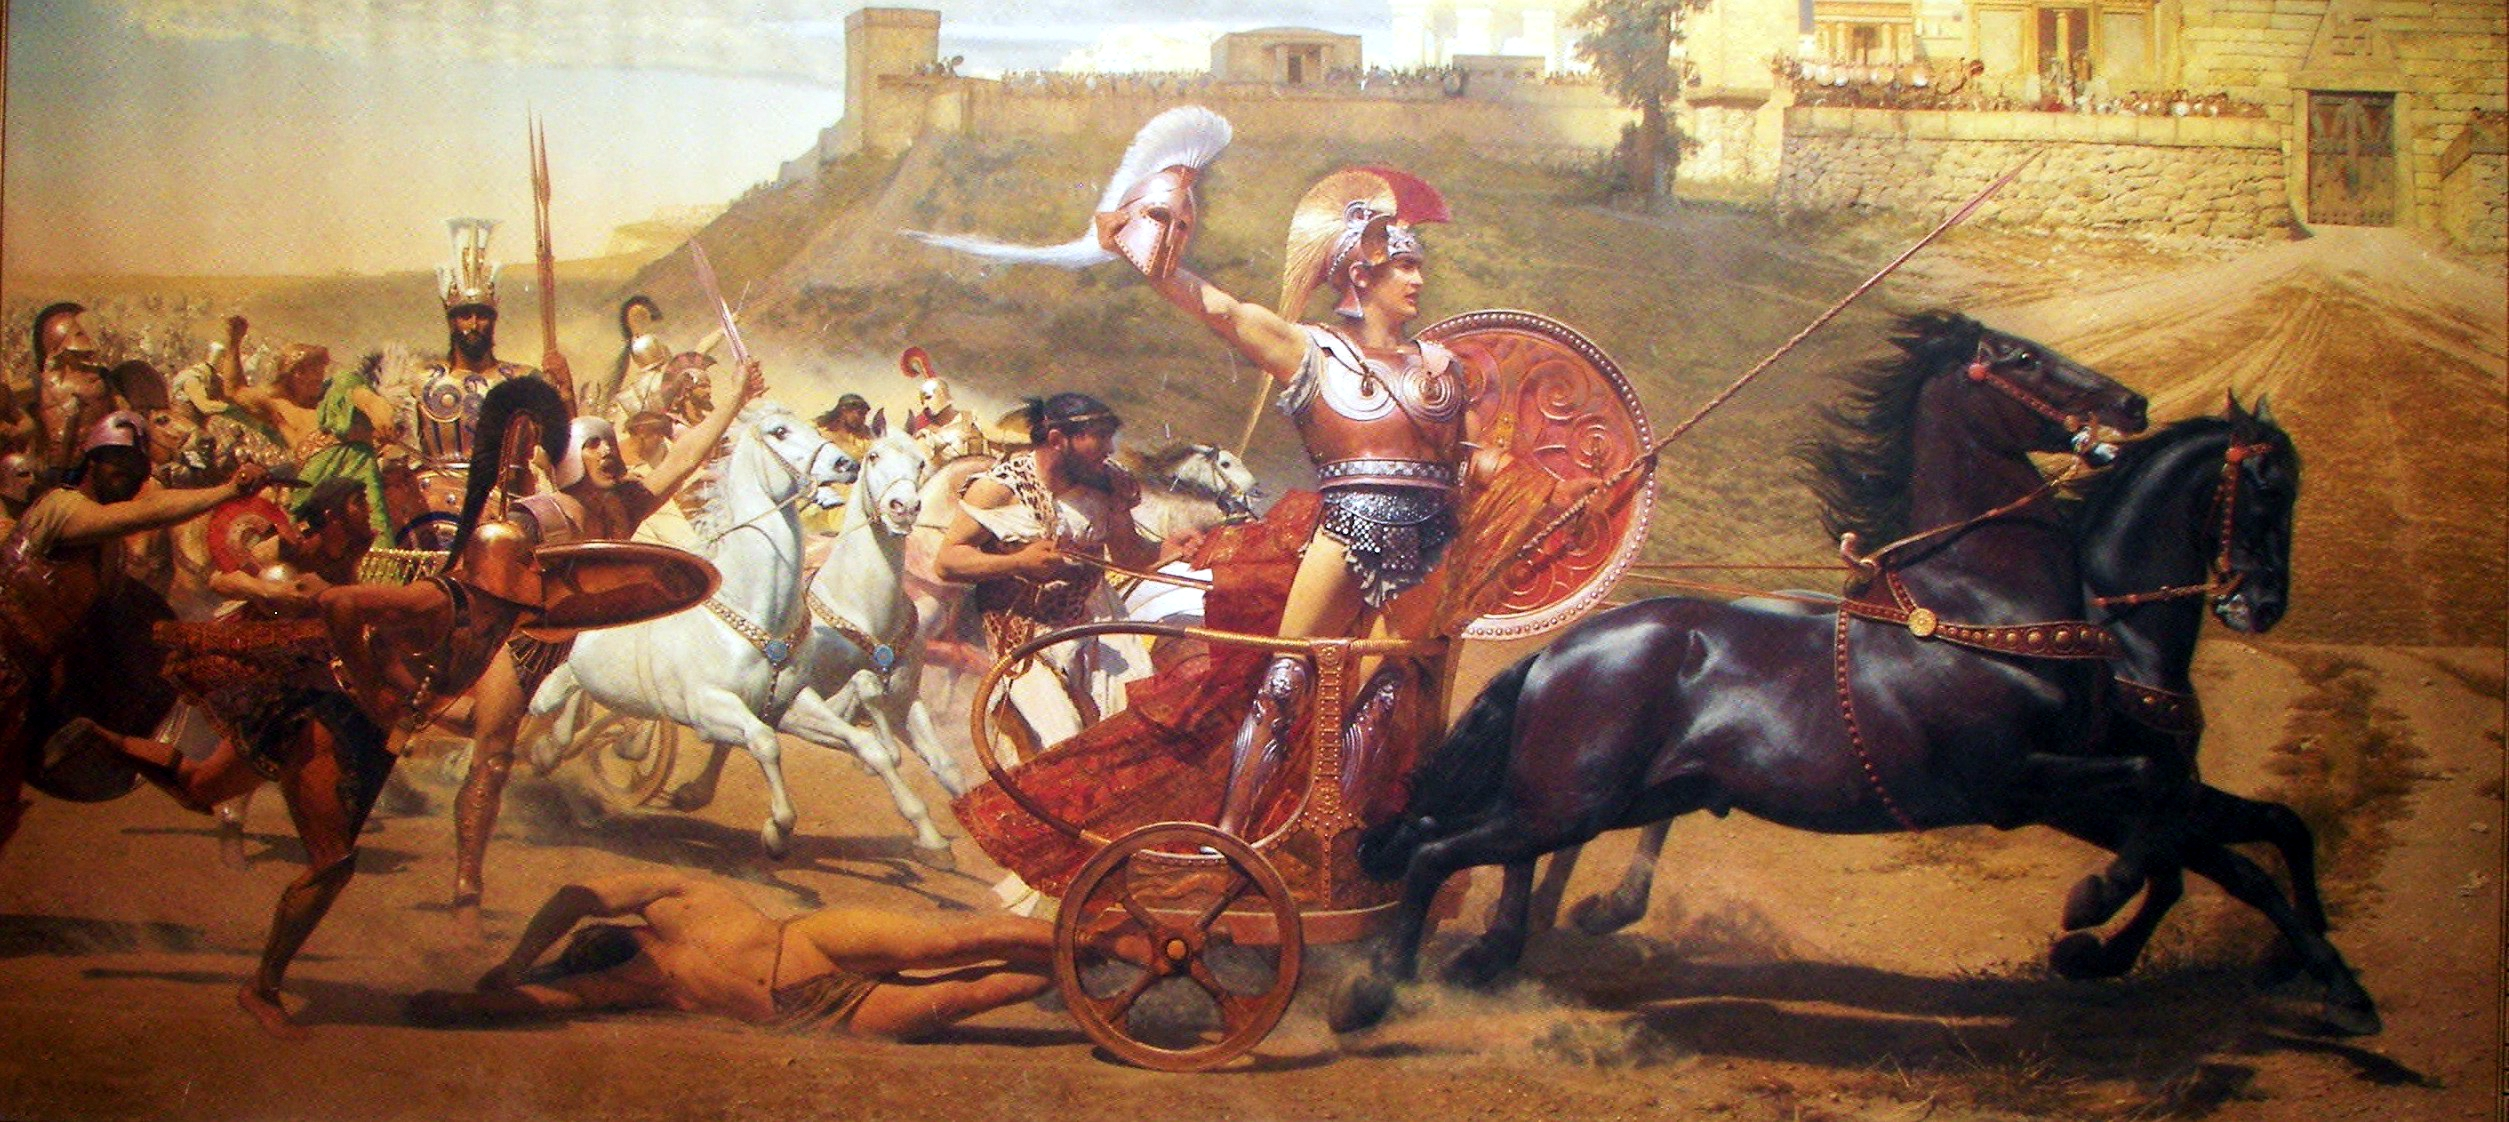 The Triumph Of Achilles Hd Wallpaper Background Image 2509x1122